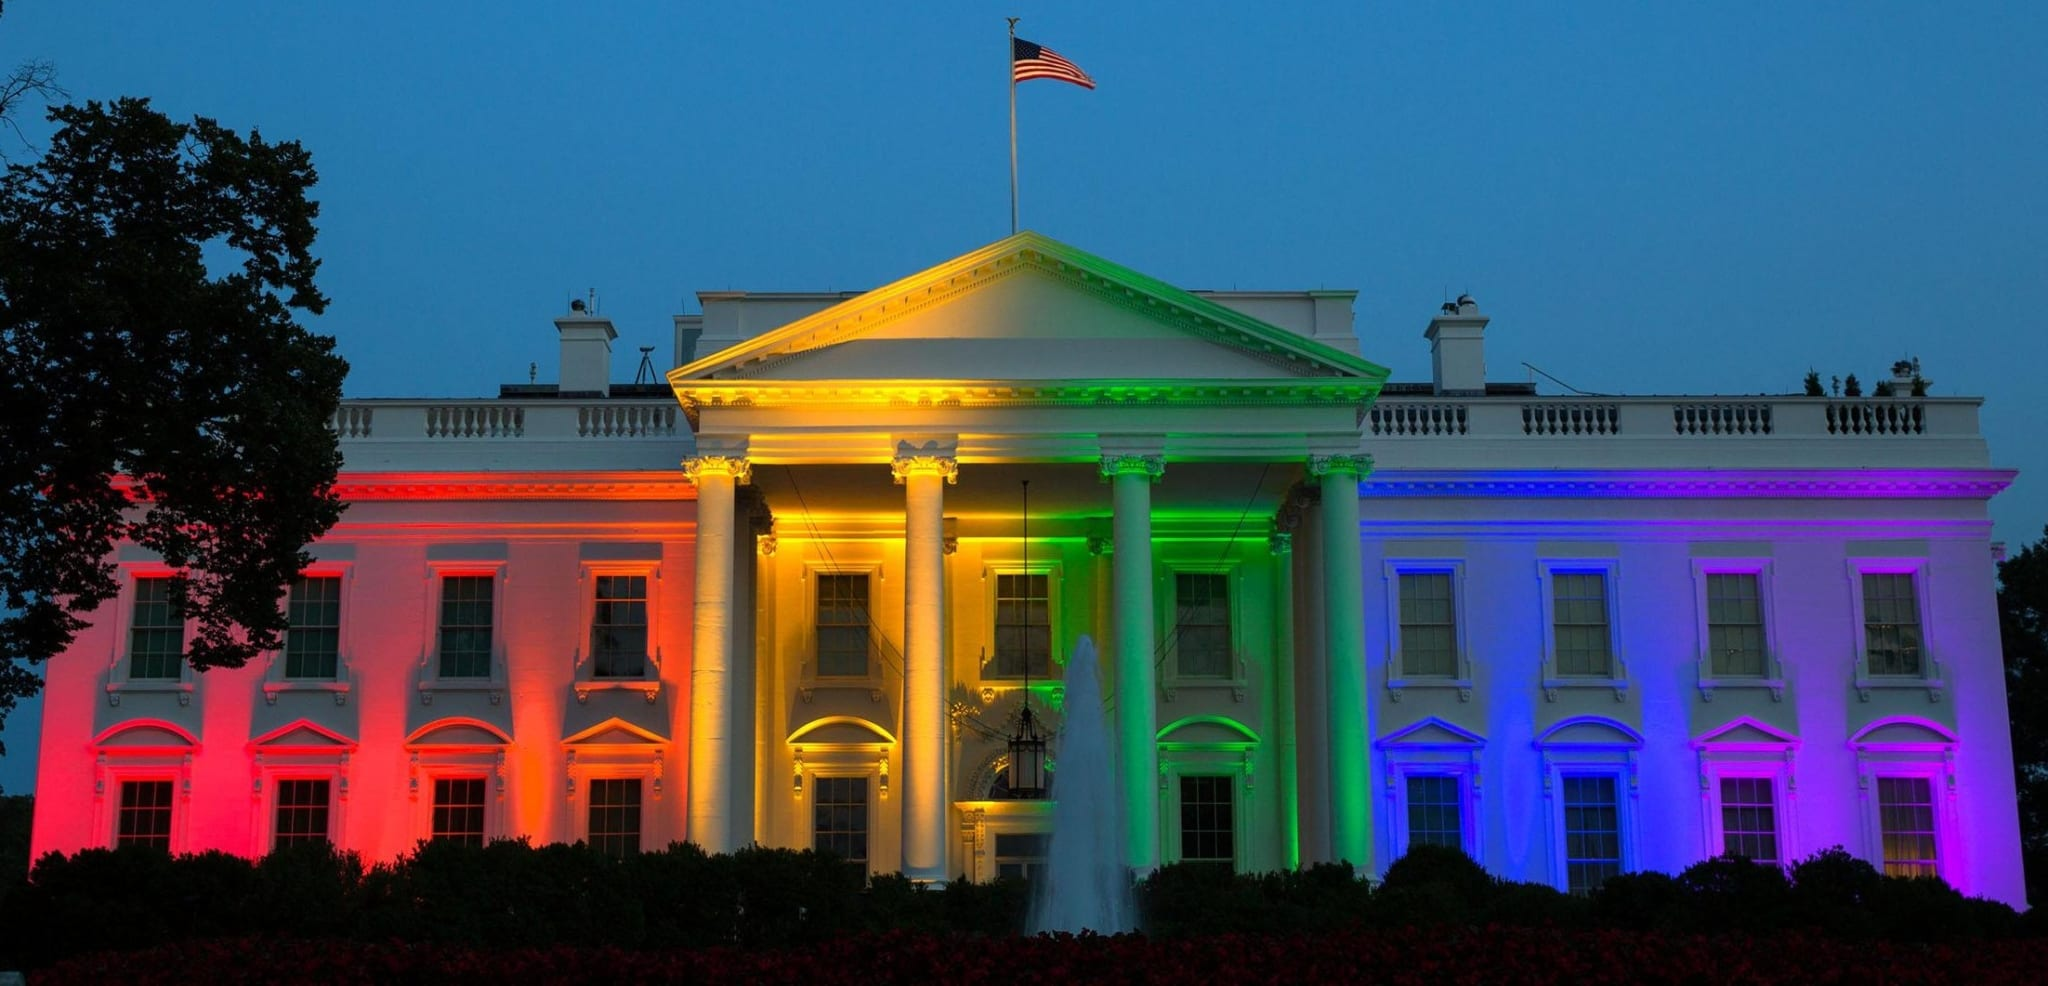 Obama officials celebrated the Supreme Court's June 2015 ruling by lighting up the White House with the colors of the Pride flag.